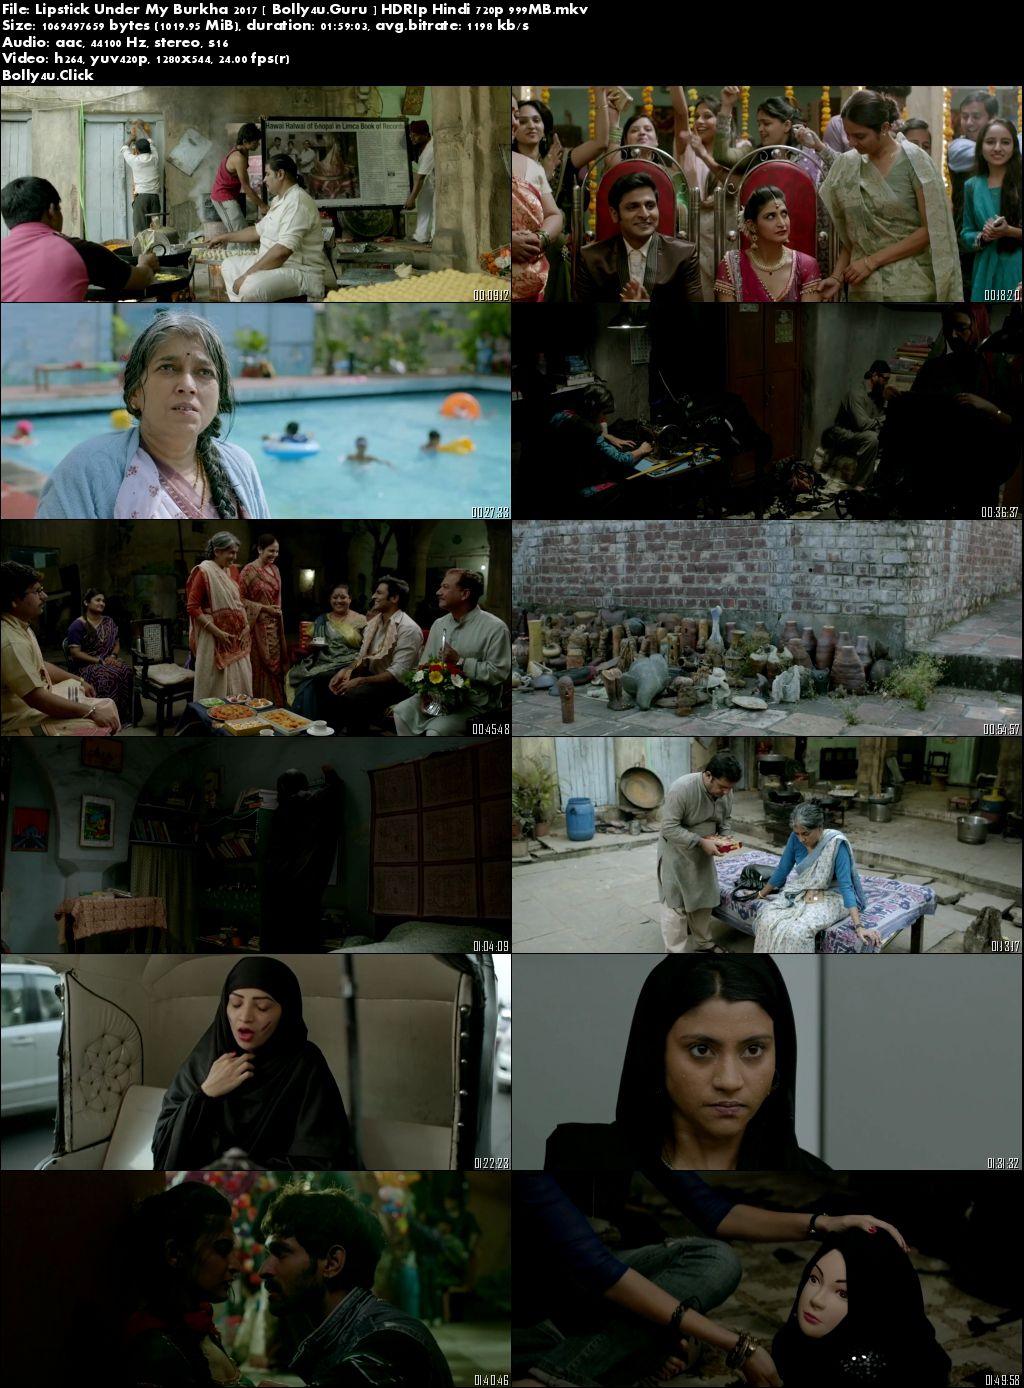 Lipstick Under My Burkha 2017 HDRip 999MB Full Hindi Movie Download 720p